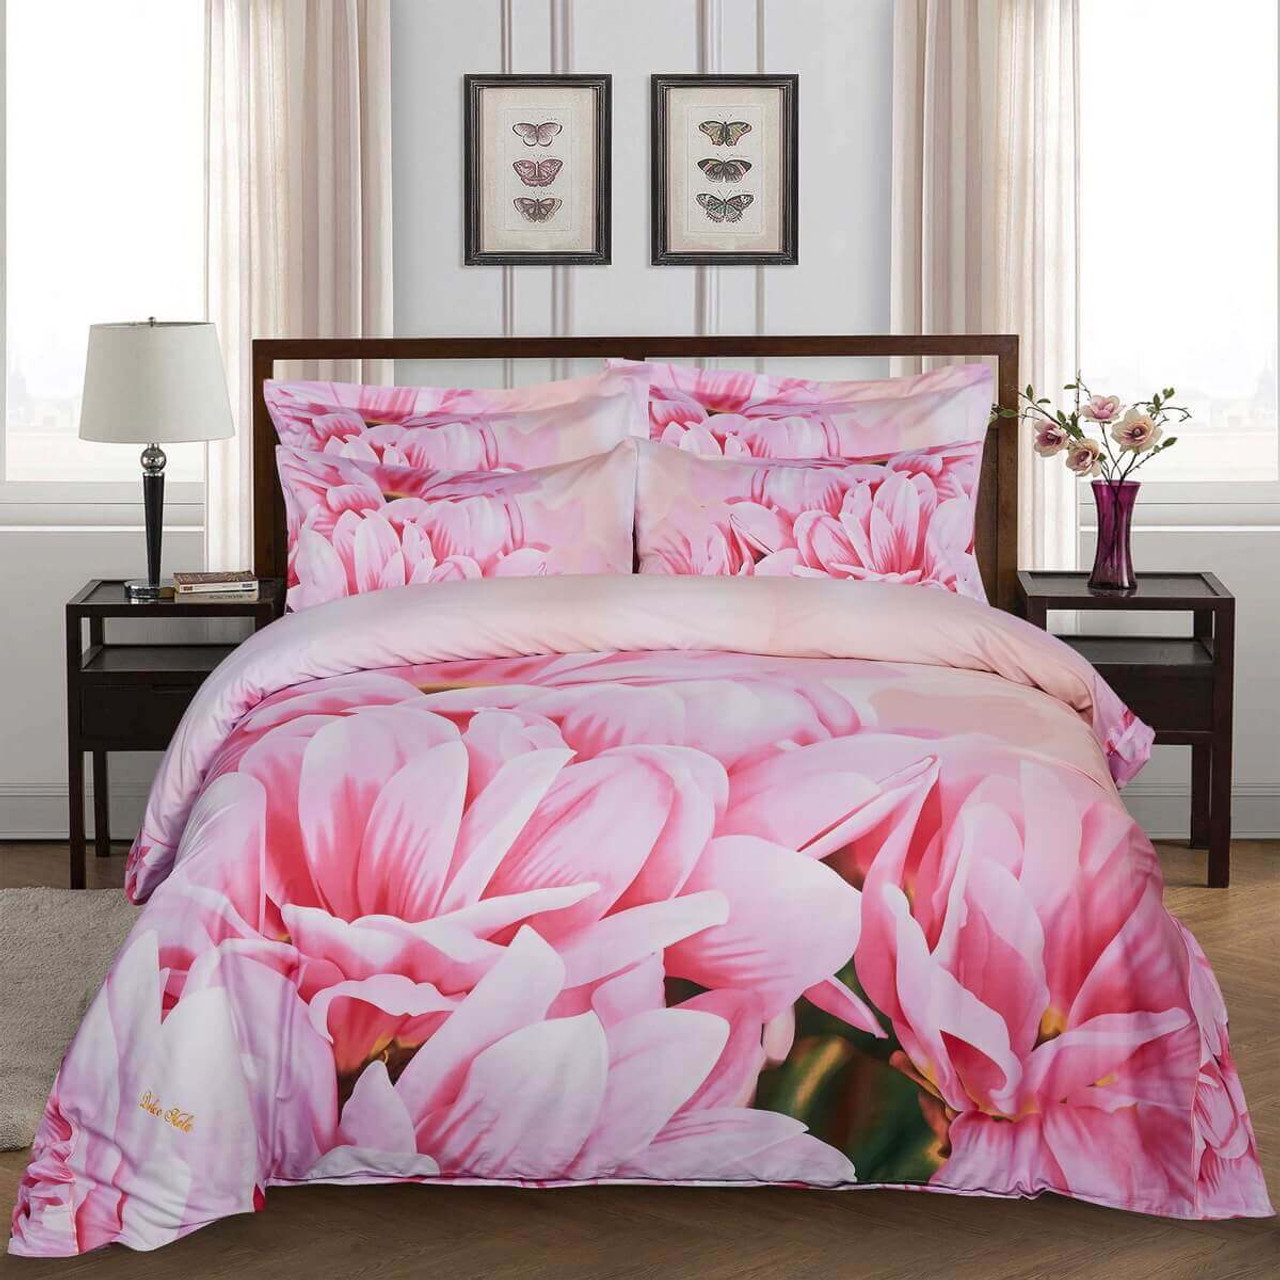 Floral Bedding, Dolce Mela - May DM701K